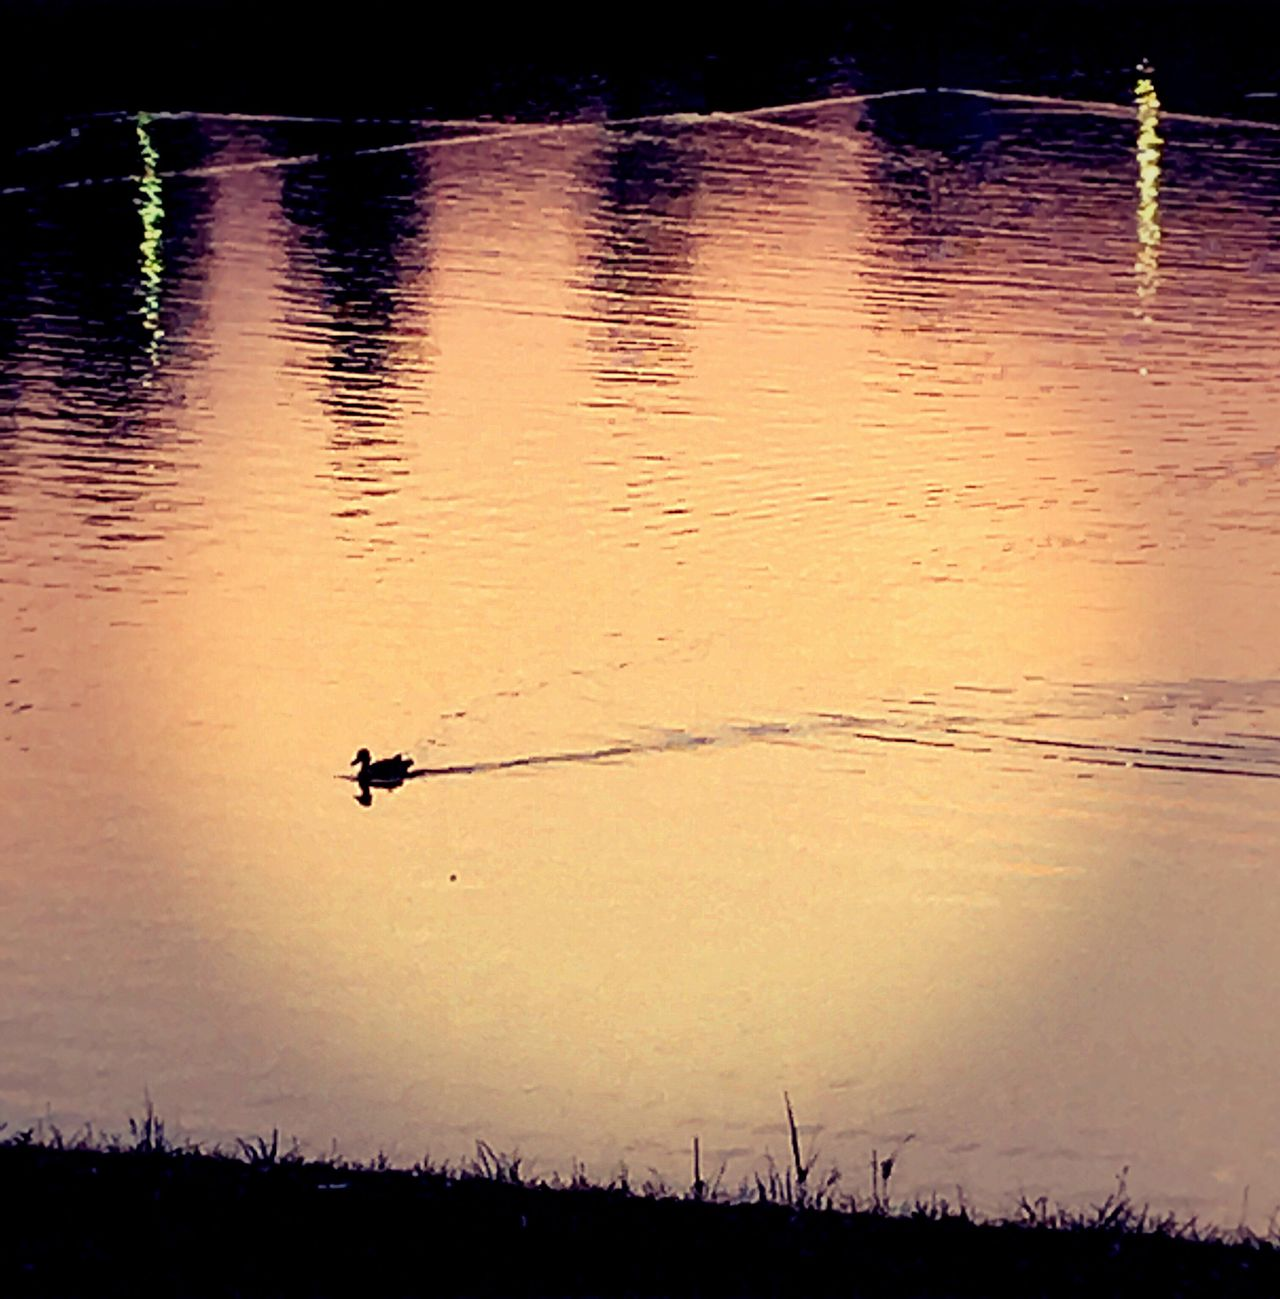 Tranquil Lake Sunset Nature Animals In The Wild Bird Water Beauty In Nature Reflection Tranquility Lake Scenics EyeEm Selects